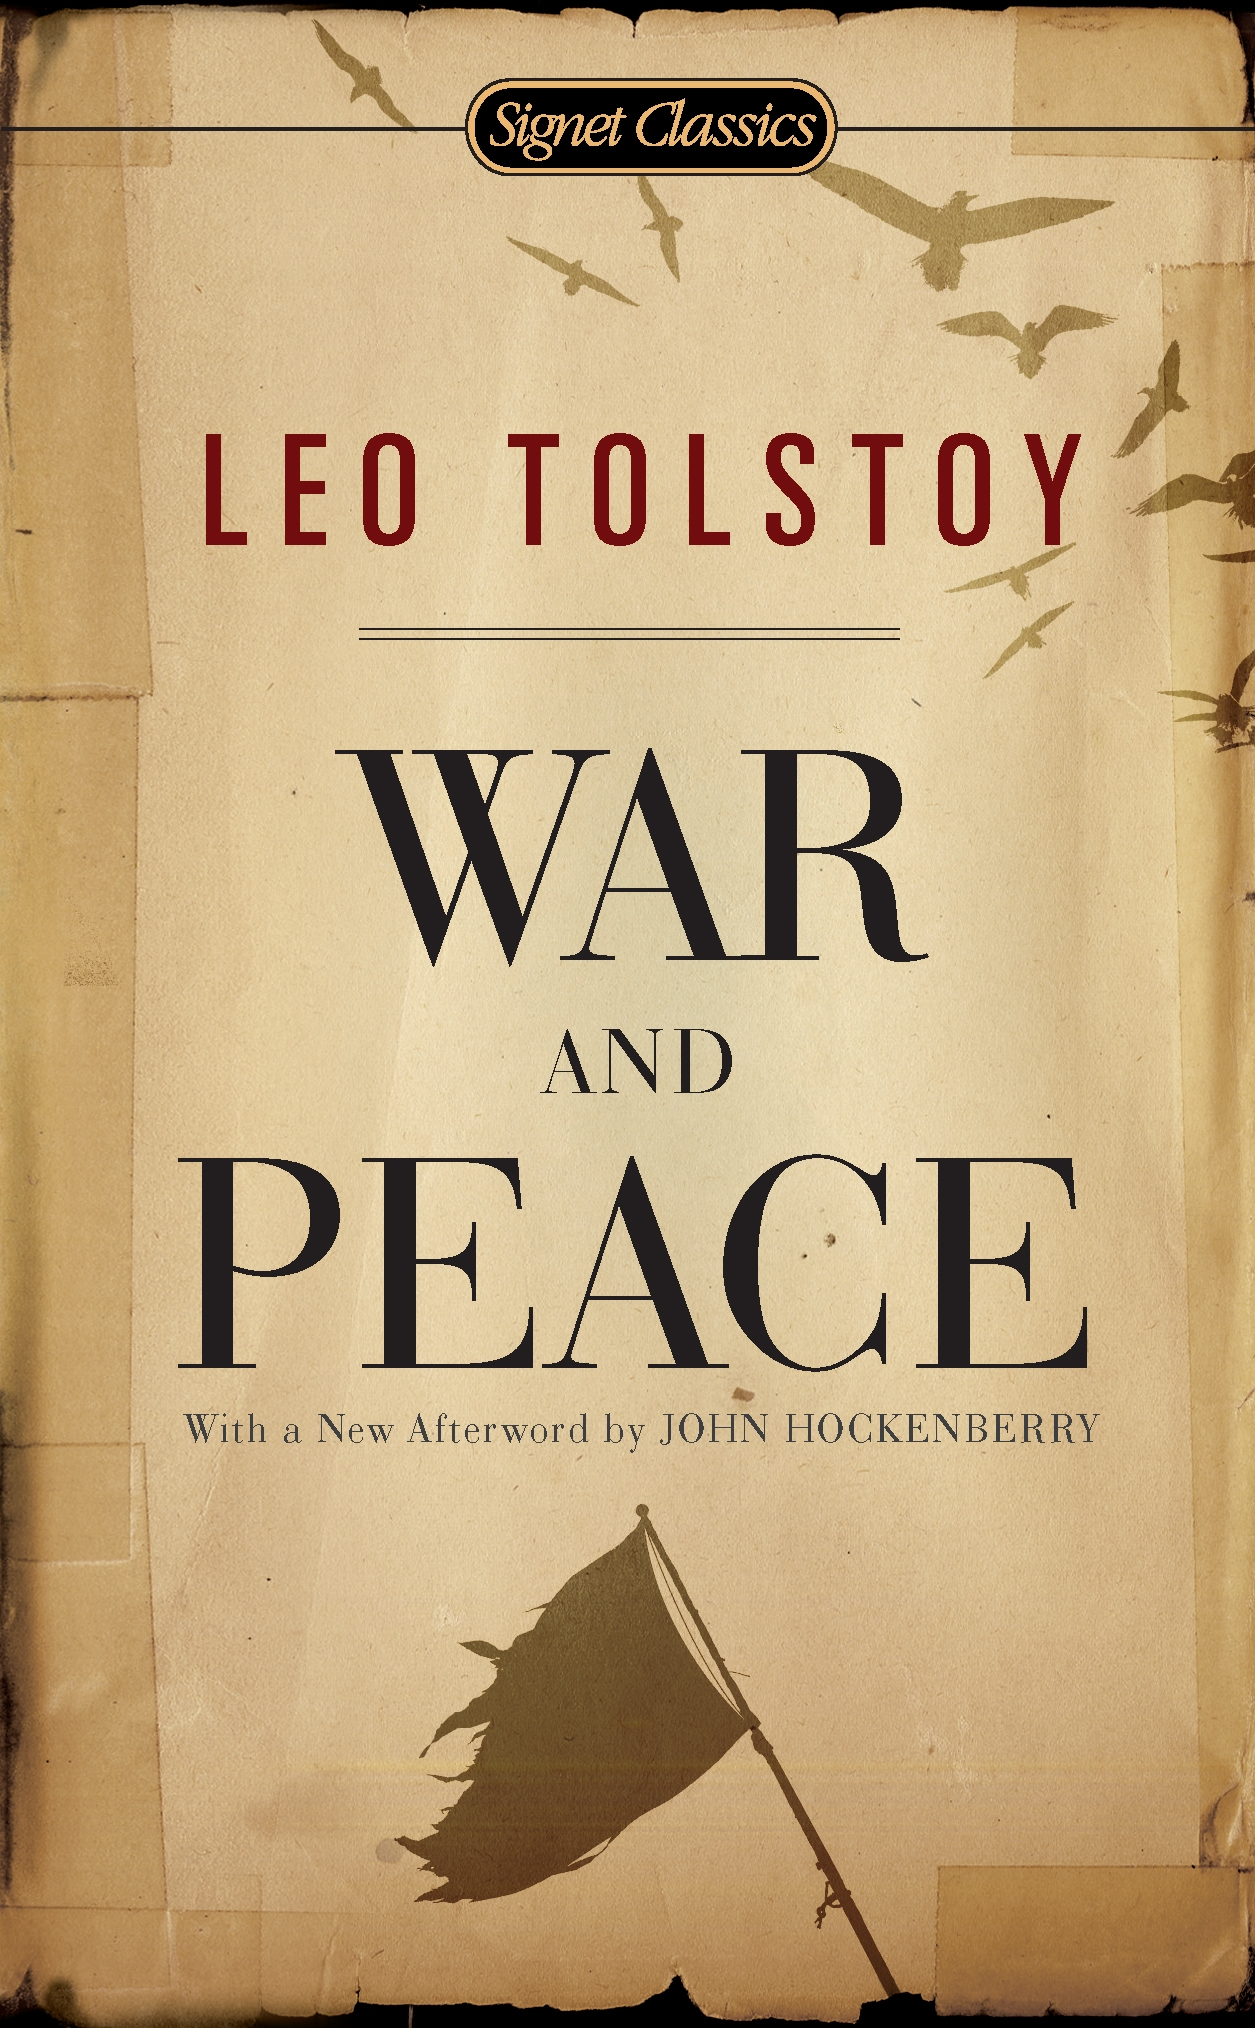 essay on war and peace by leo tolstoy   essaybook review war peace leo tolstoy for students in uk usa www